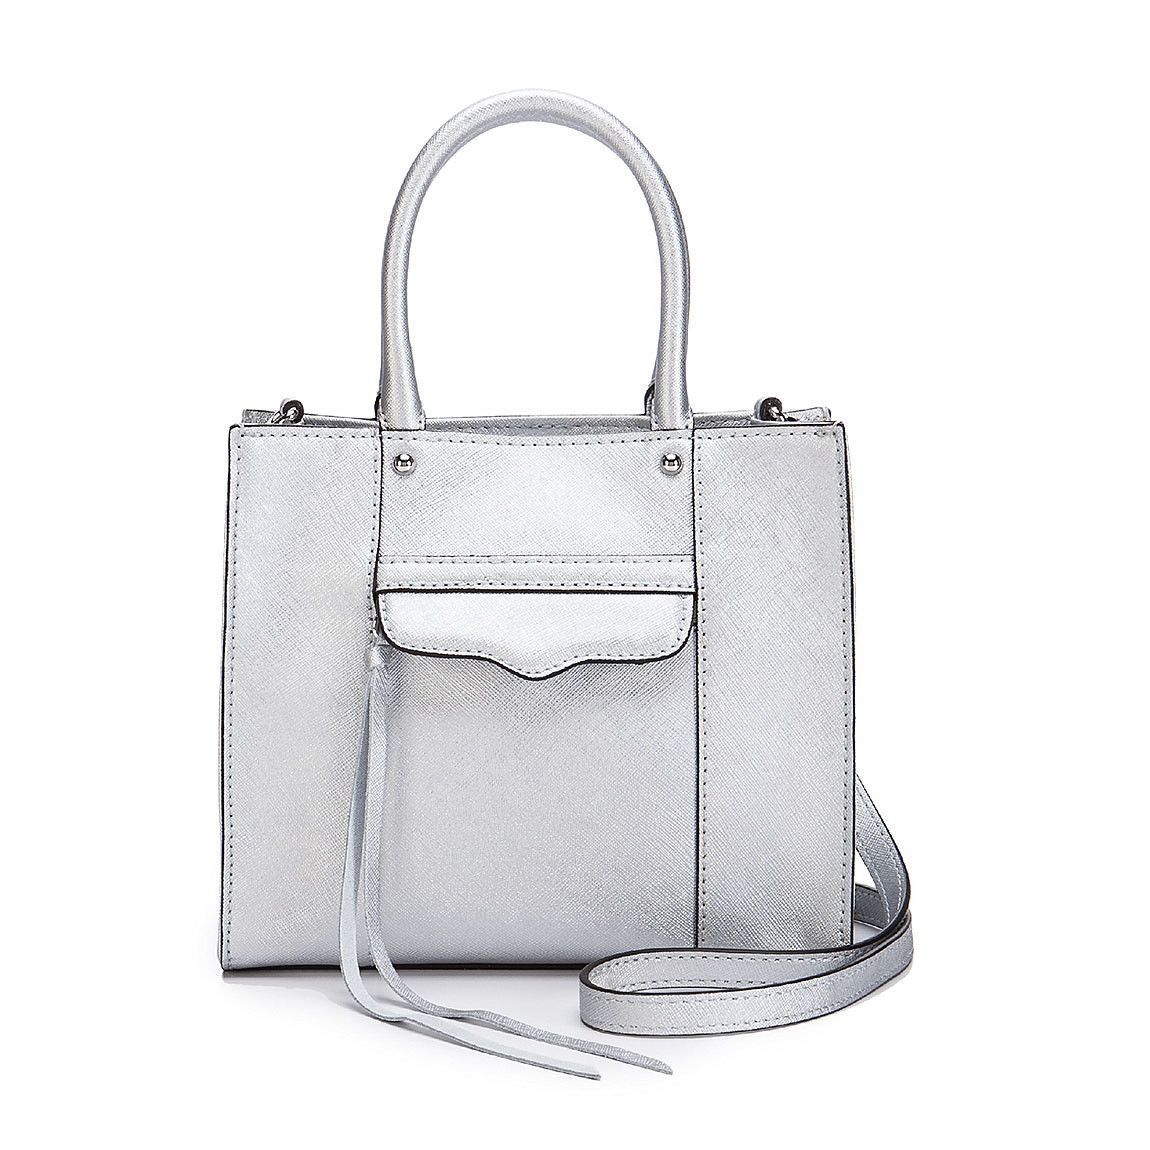 Primary image for Rebecca Minkoff MAB Saffiano Leather Mini Metallic Silver Tote NWT